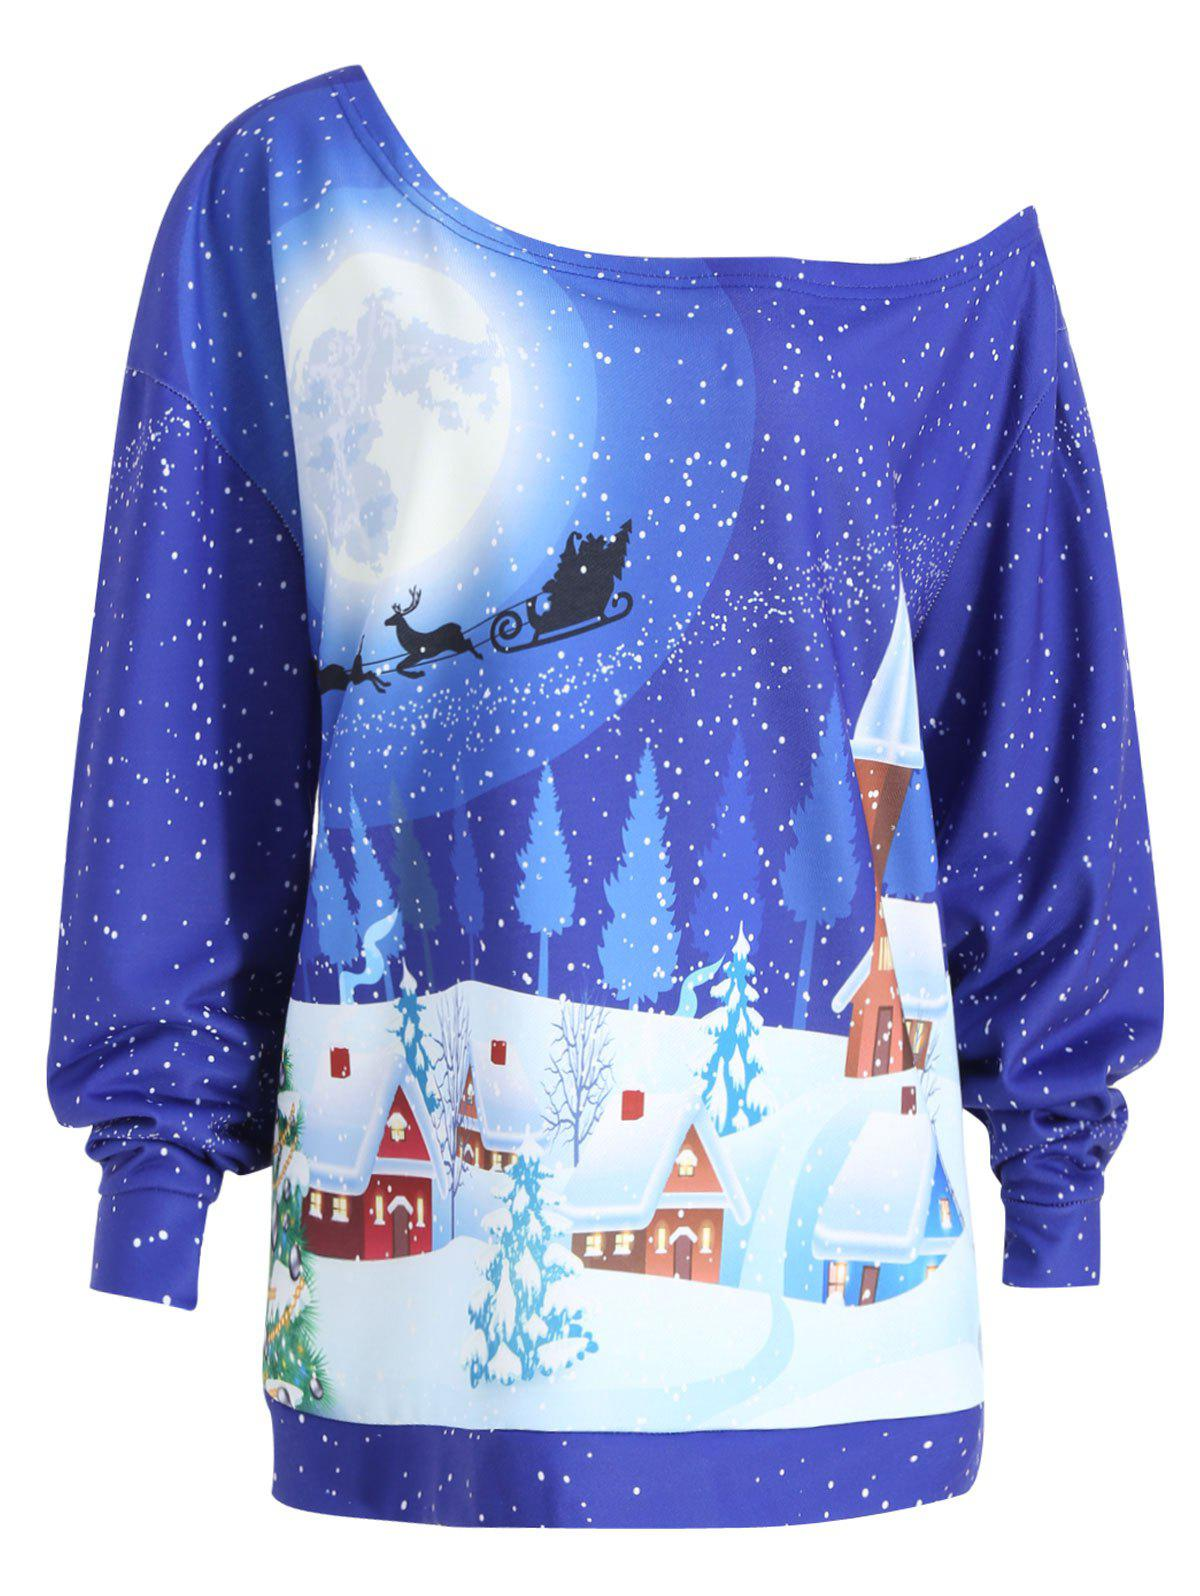 Christmas Evening Printed Plus Size Skew Neck SweatshirtWOMEN<br><br>Size: 3XL; Color: BLUE; Material: Cotton Blend,Polyester; Shirt Length: Regular; Sleeve Length: Full; Style: Fashion; Pattern Style: Print; Season: Fall,Winter; Weight: 0.4100kg; Package Contents: 1 x Sweatshirt;